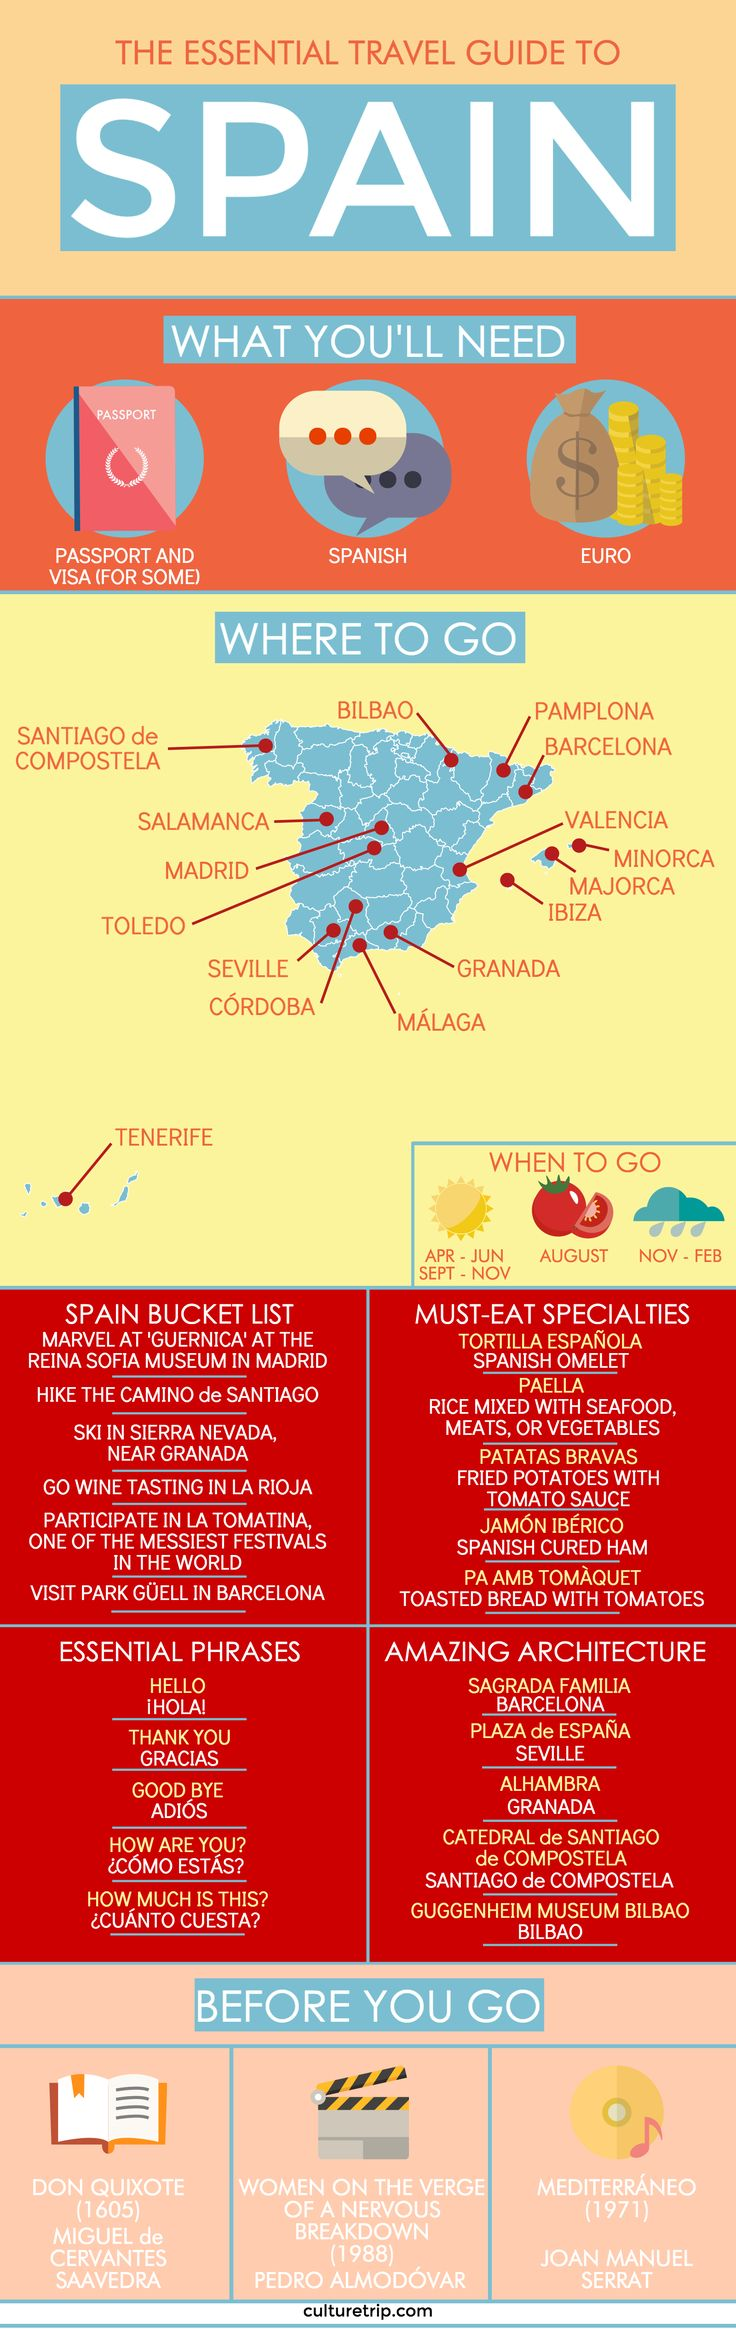 The Essential Travel Guide To Spain (Infographic)